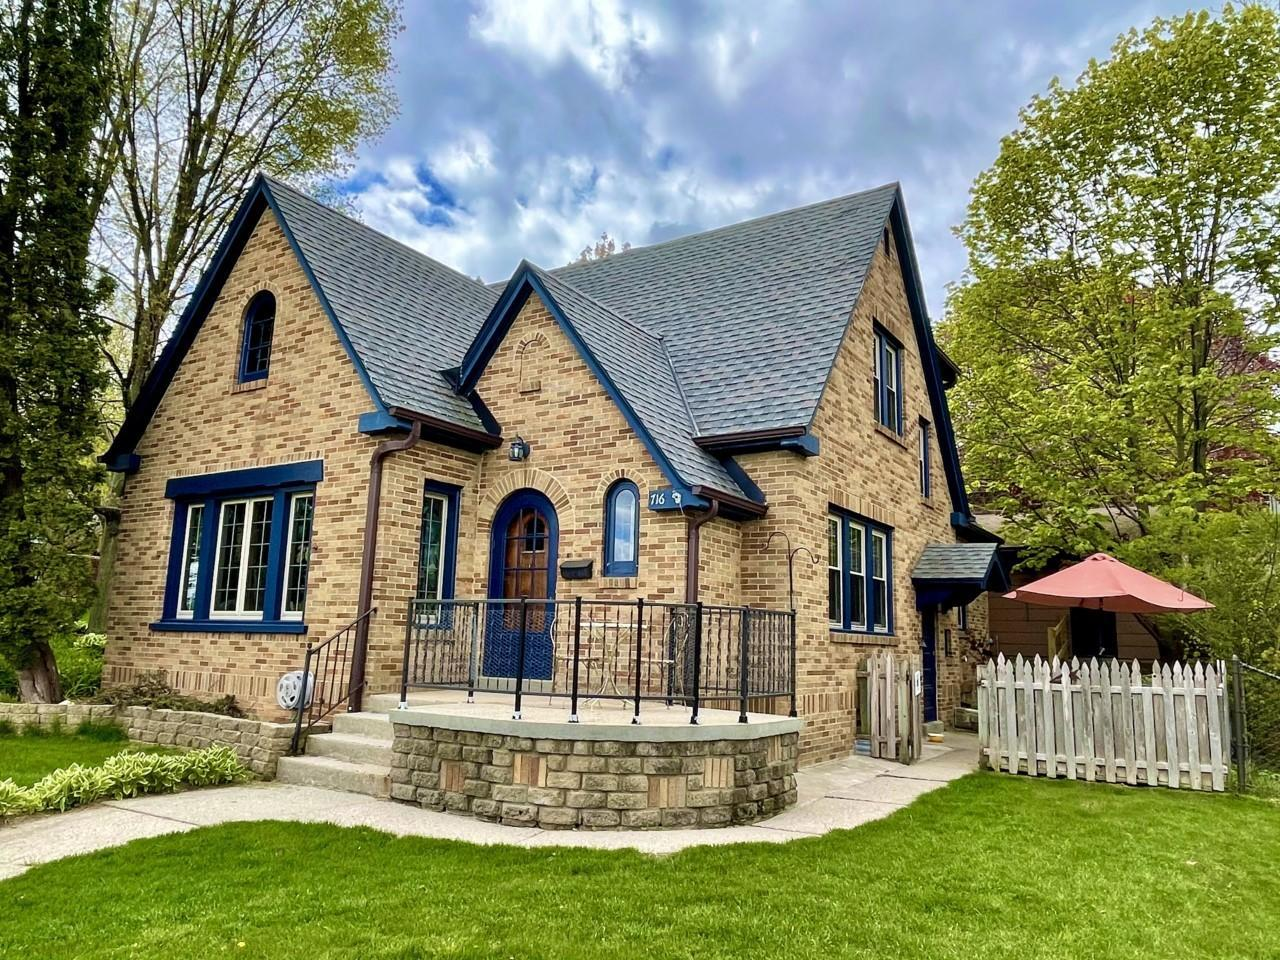 716 S 6th Ave AVENUE, WEST BEND, WI 53095